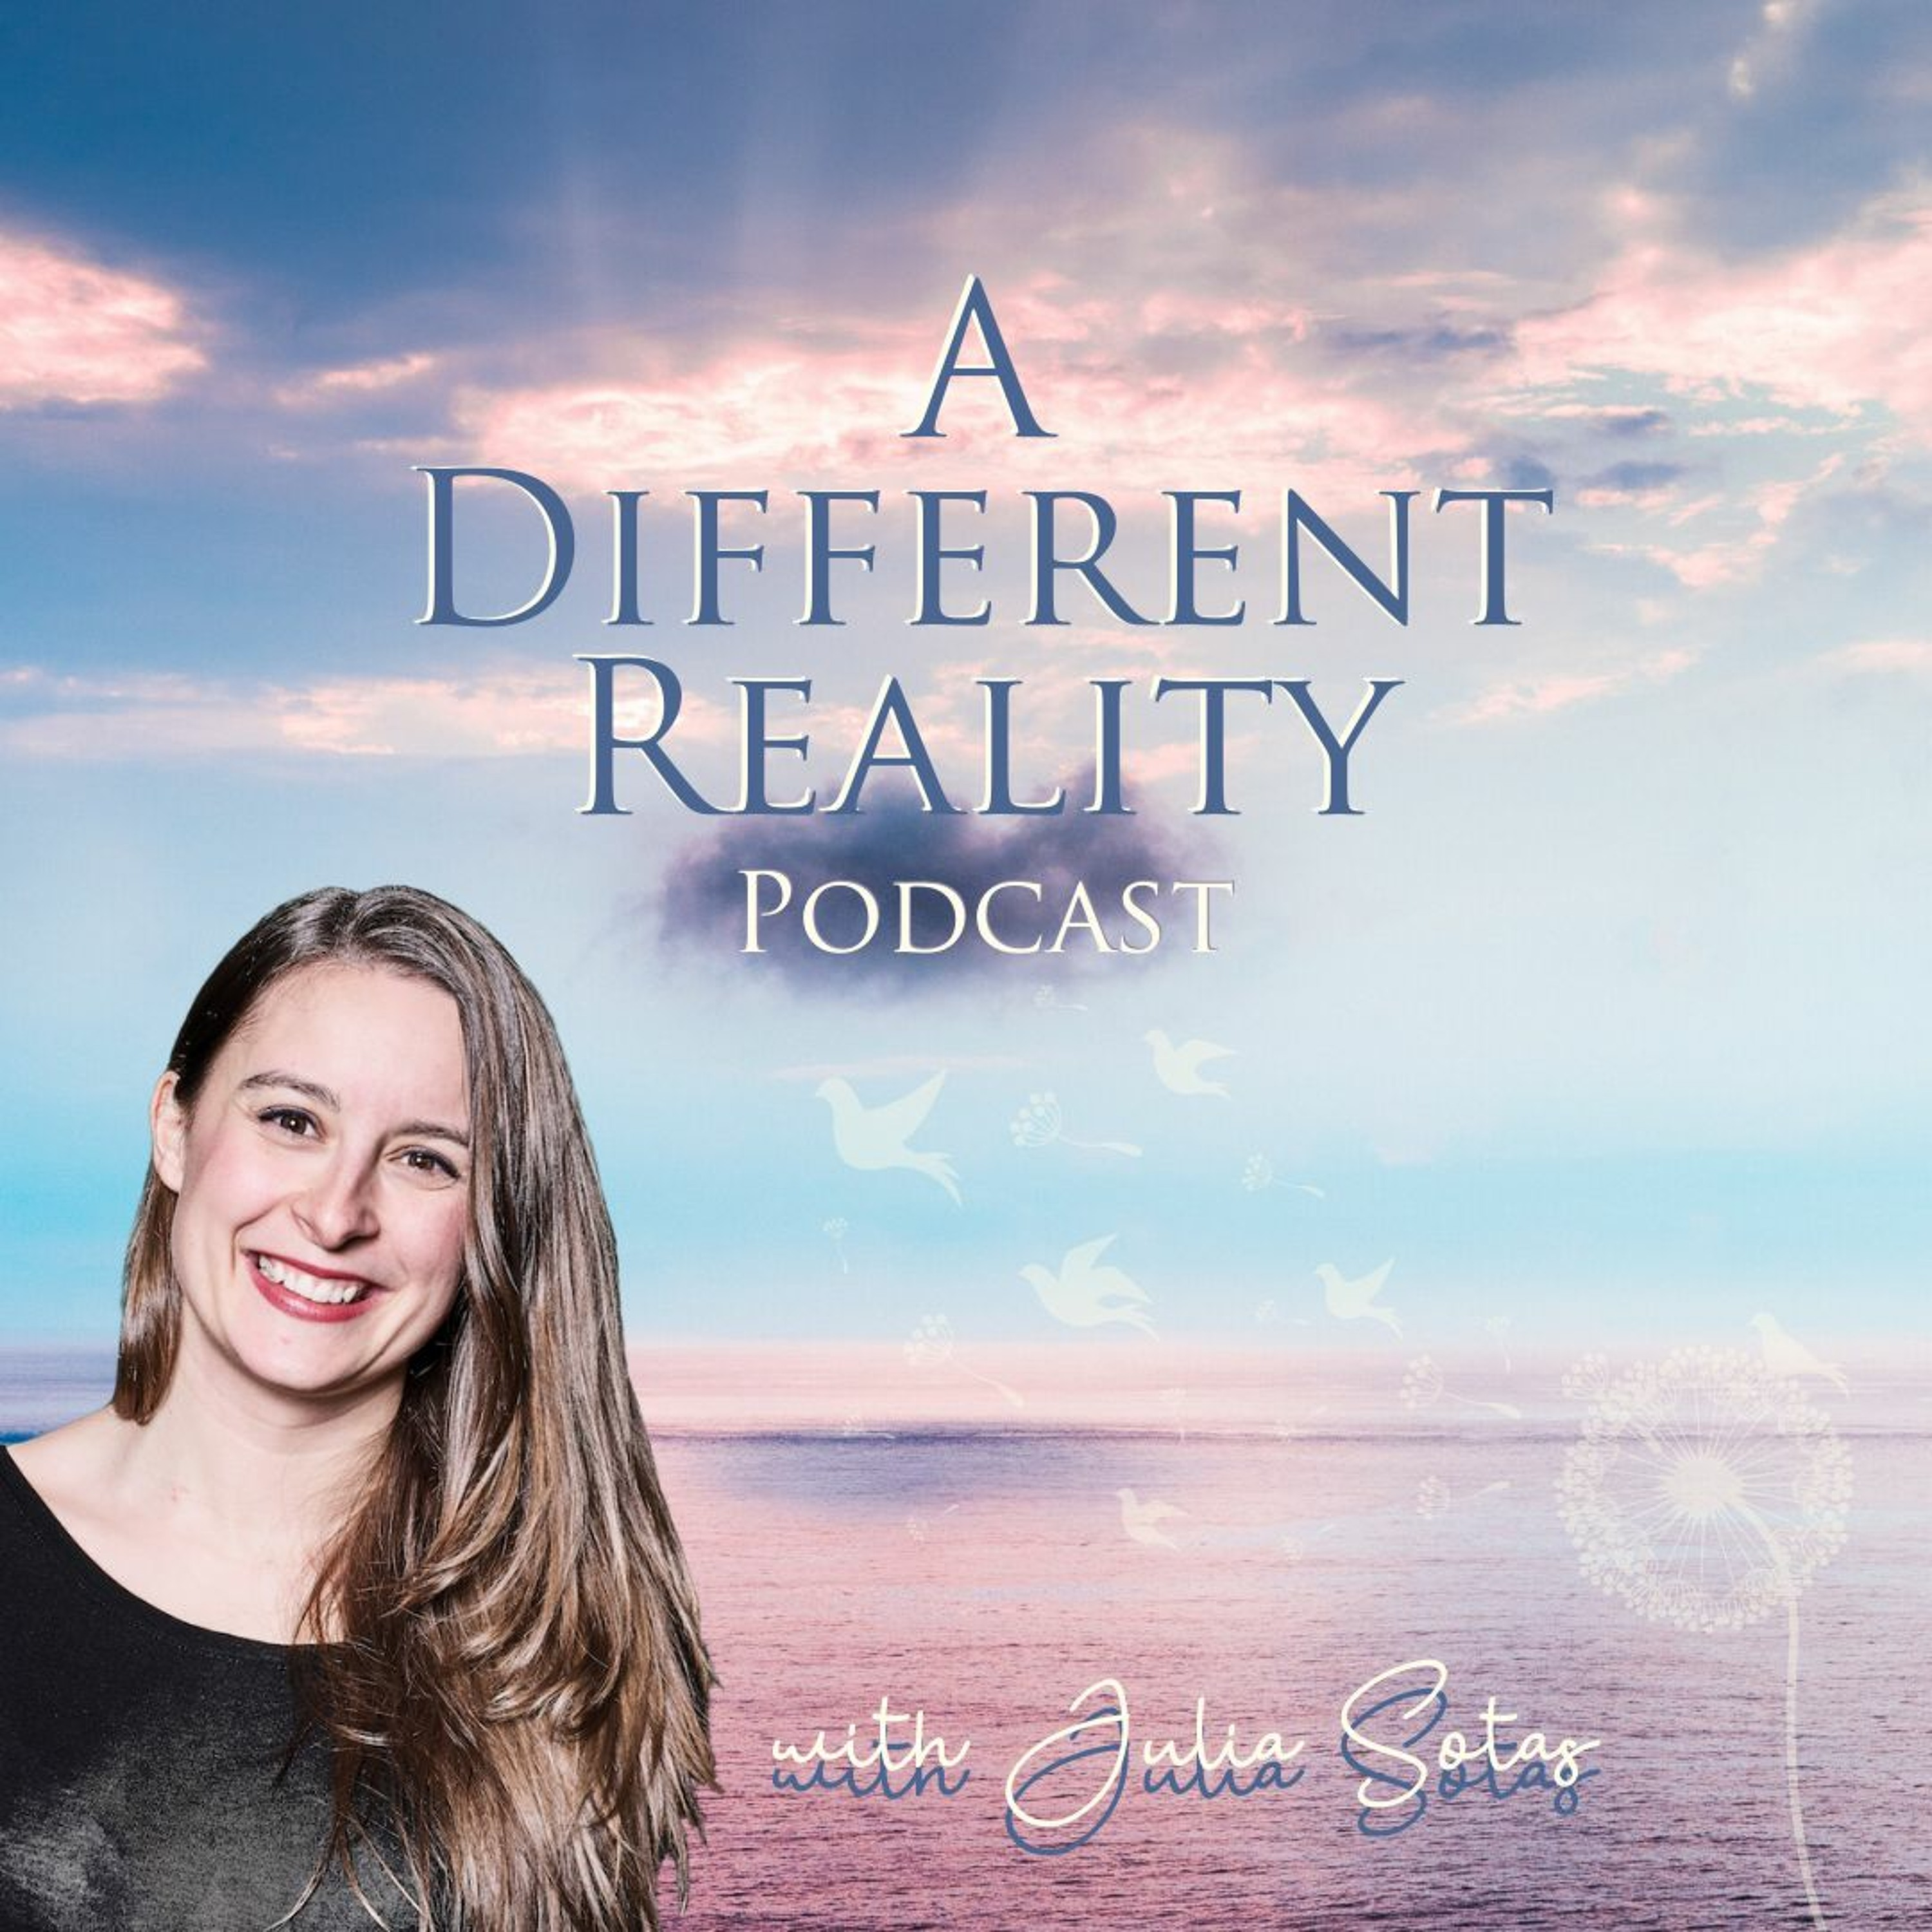 04. A Different Reality Podcast